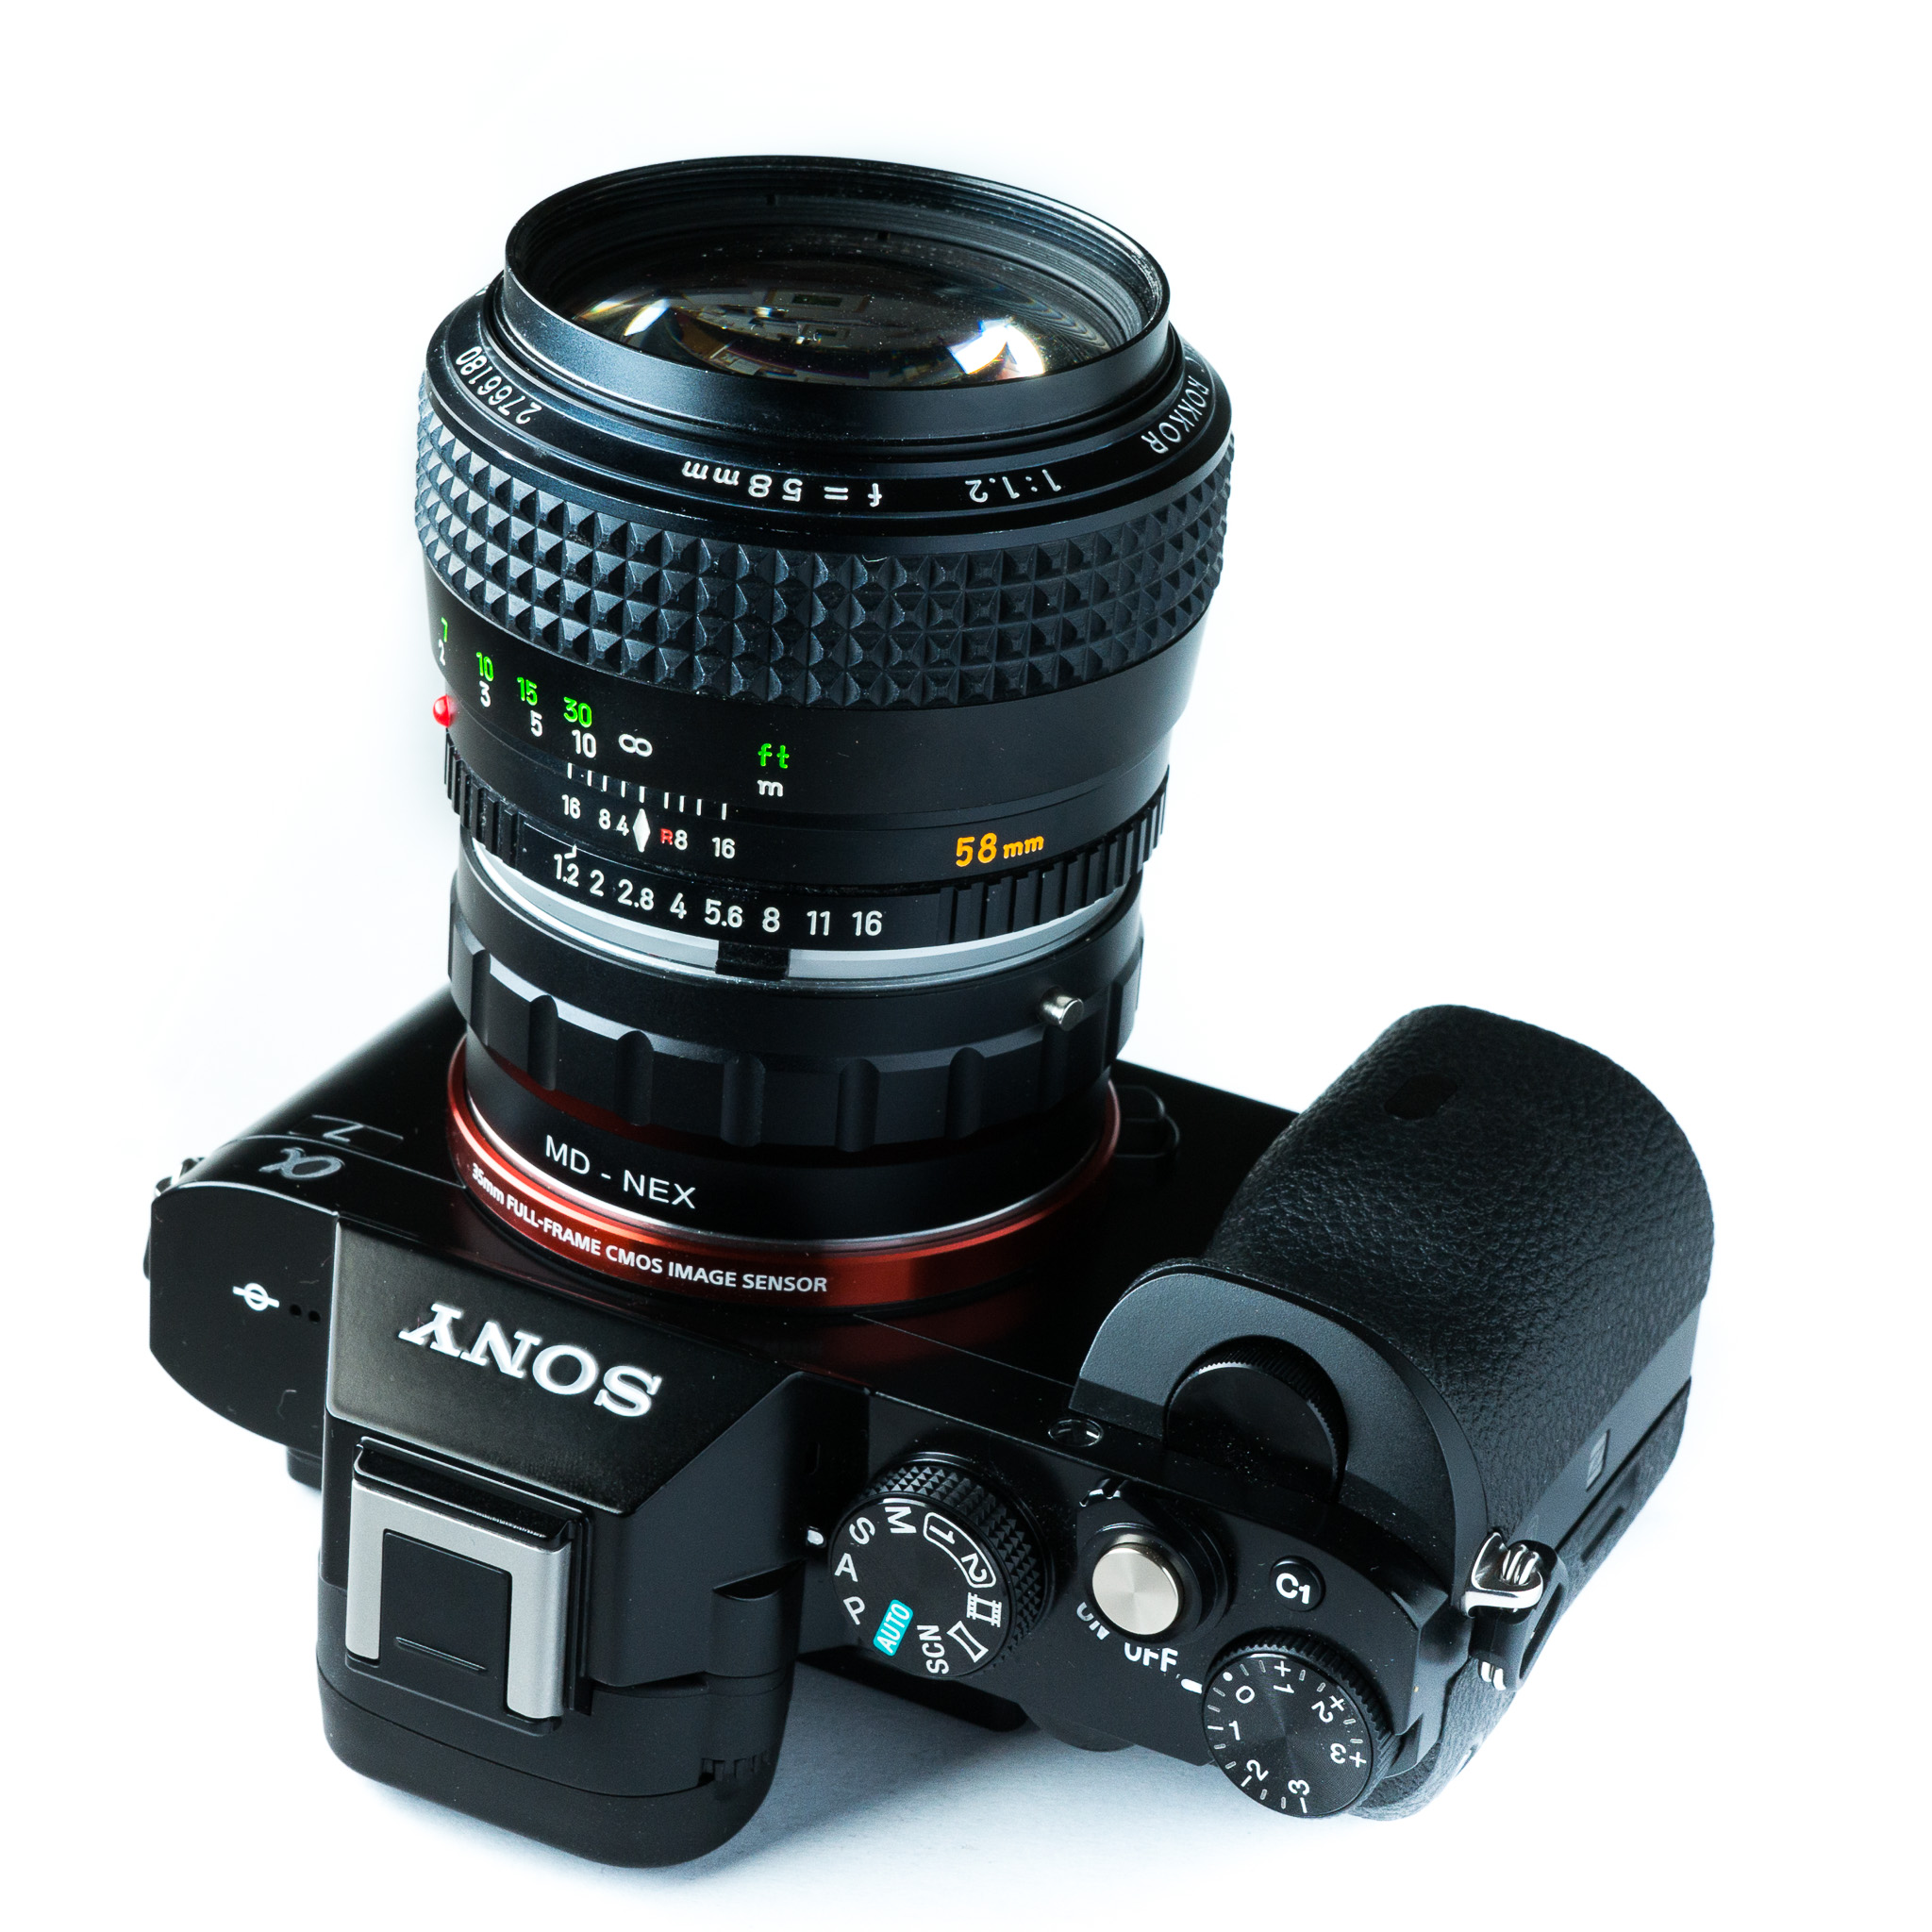 Working with the Sony Alpha 7 Tips and Tricks